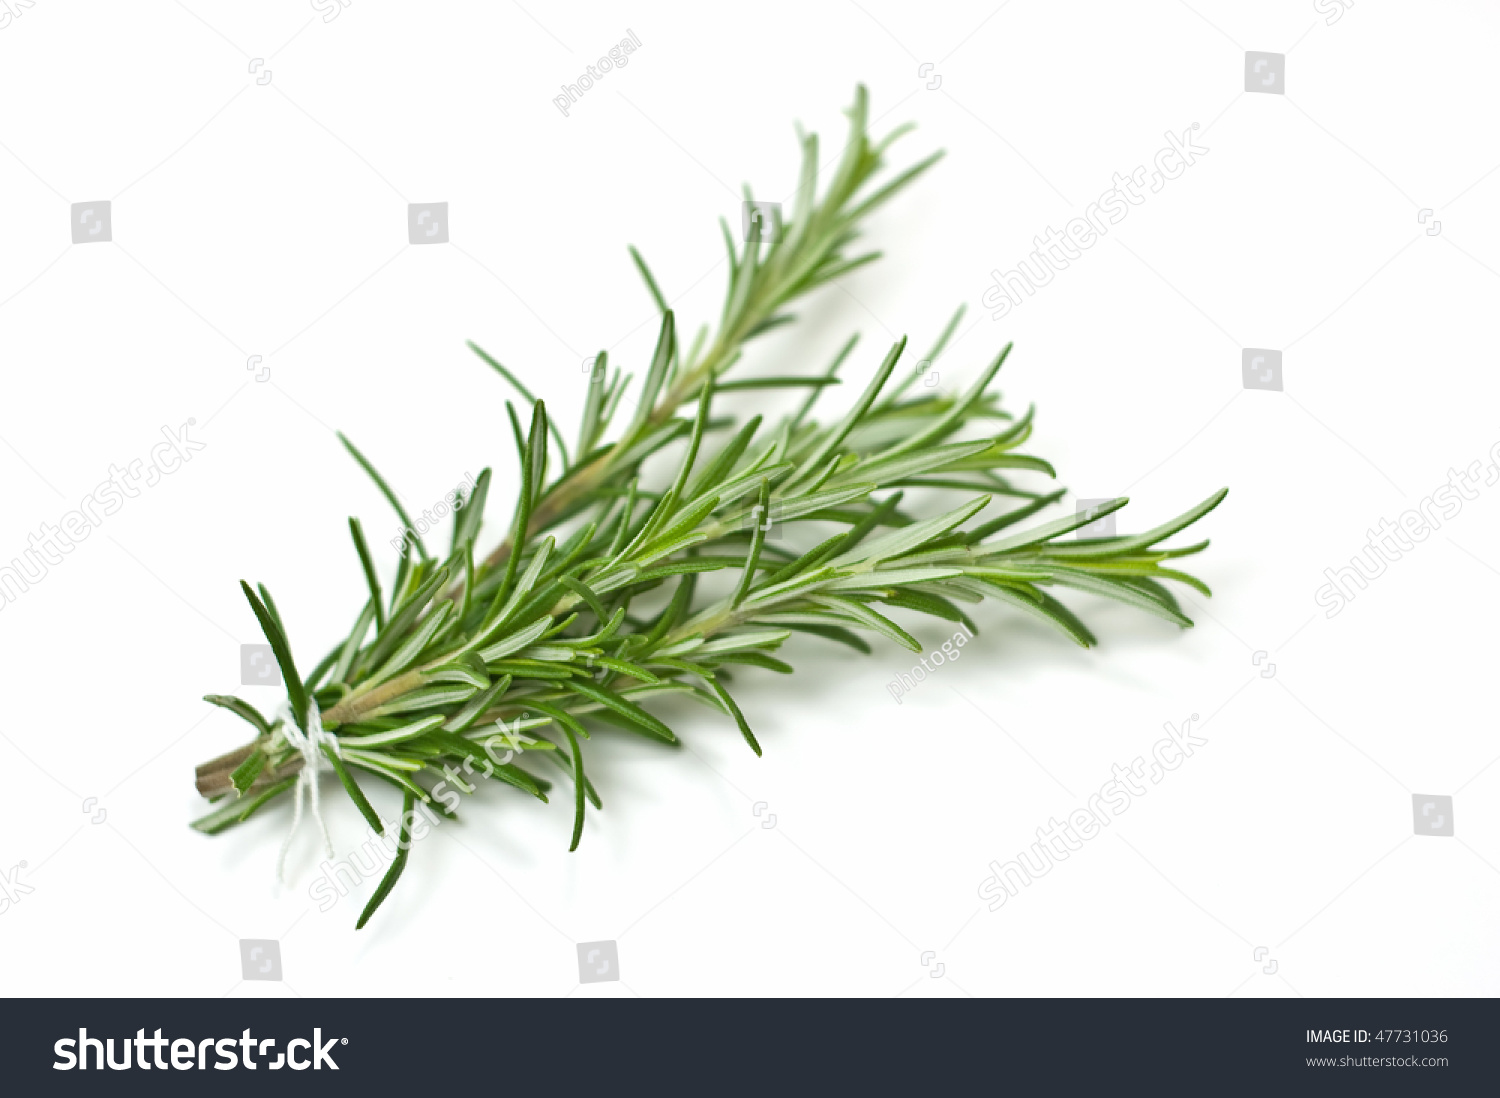 stock-photo-fresh-rosemary-bunch-with-se